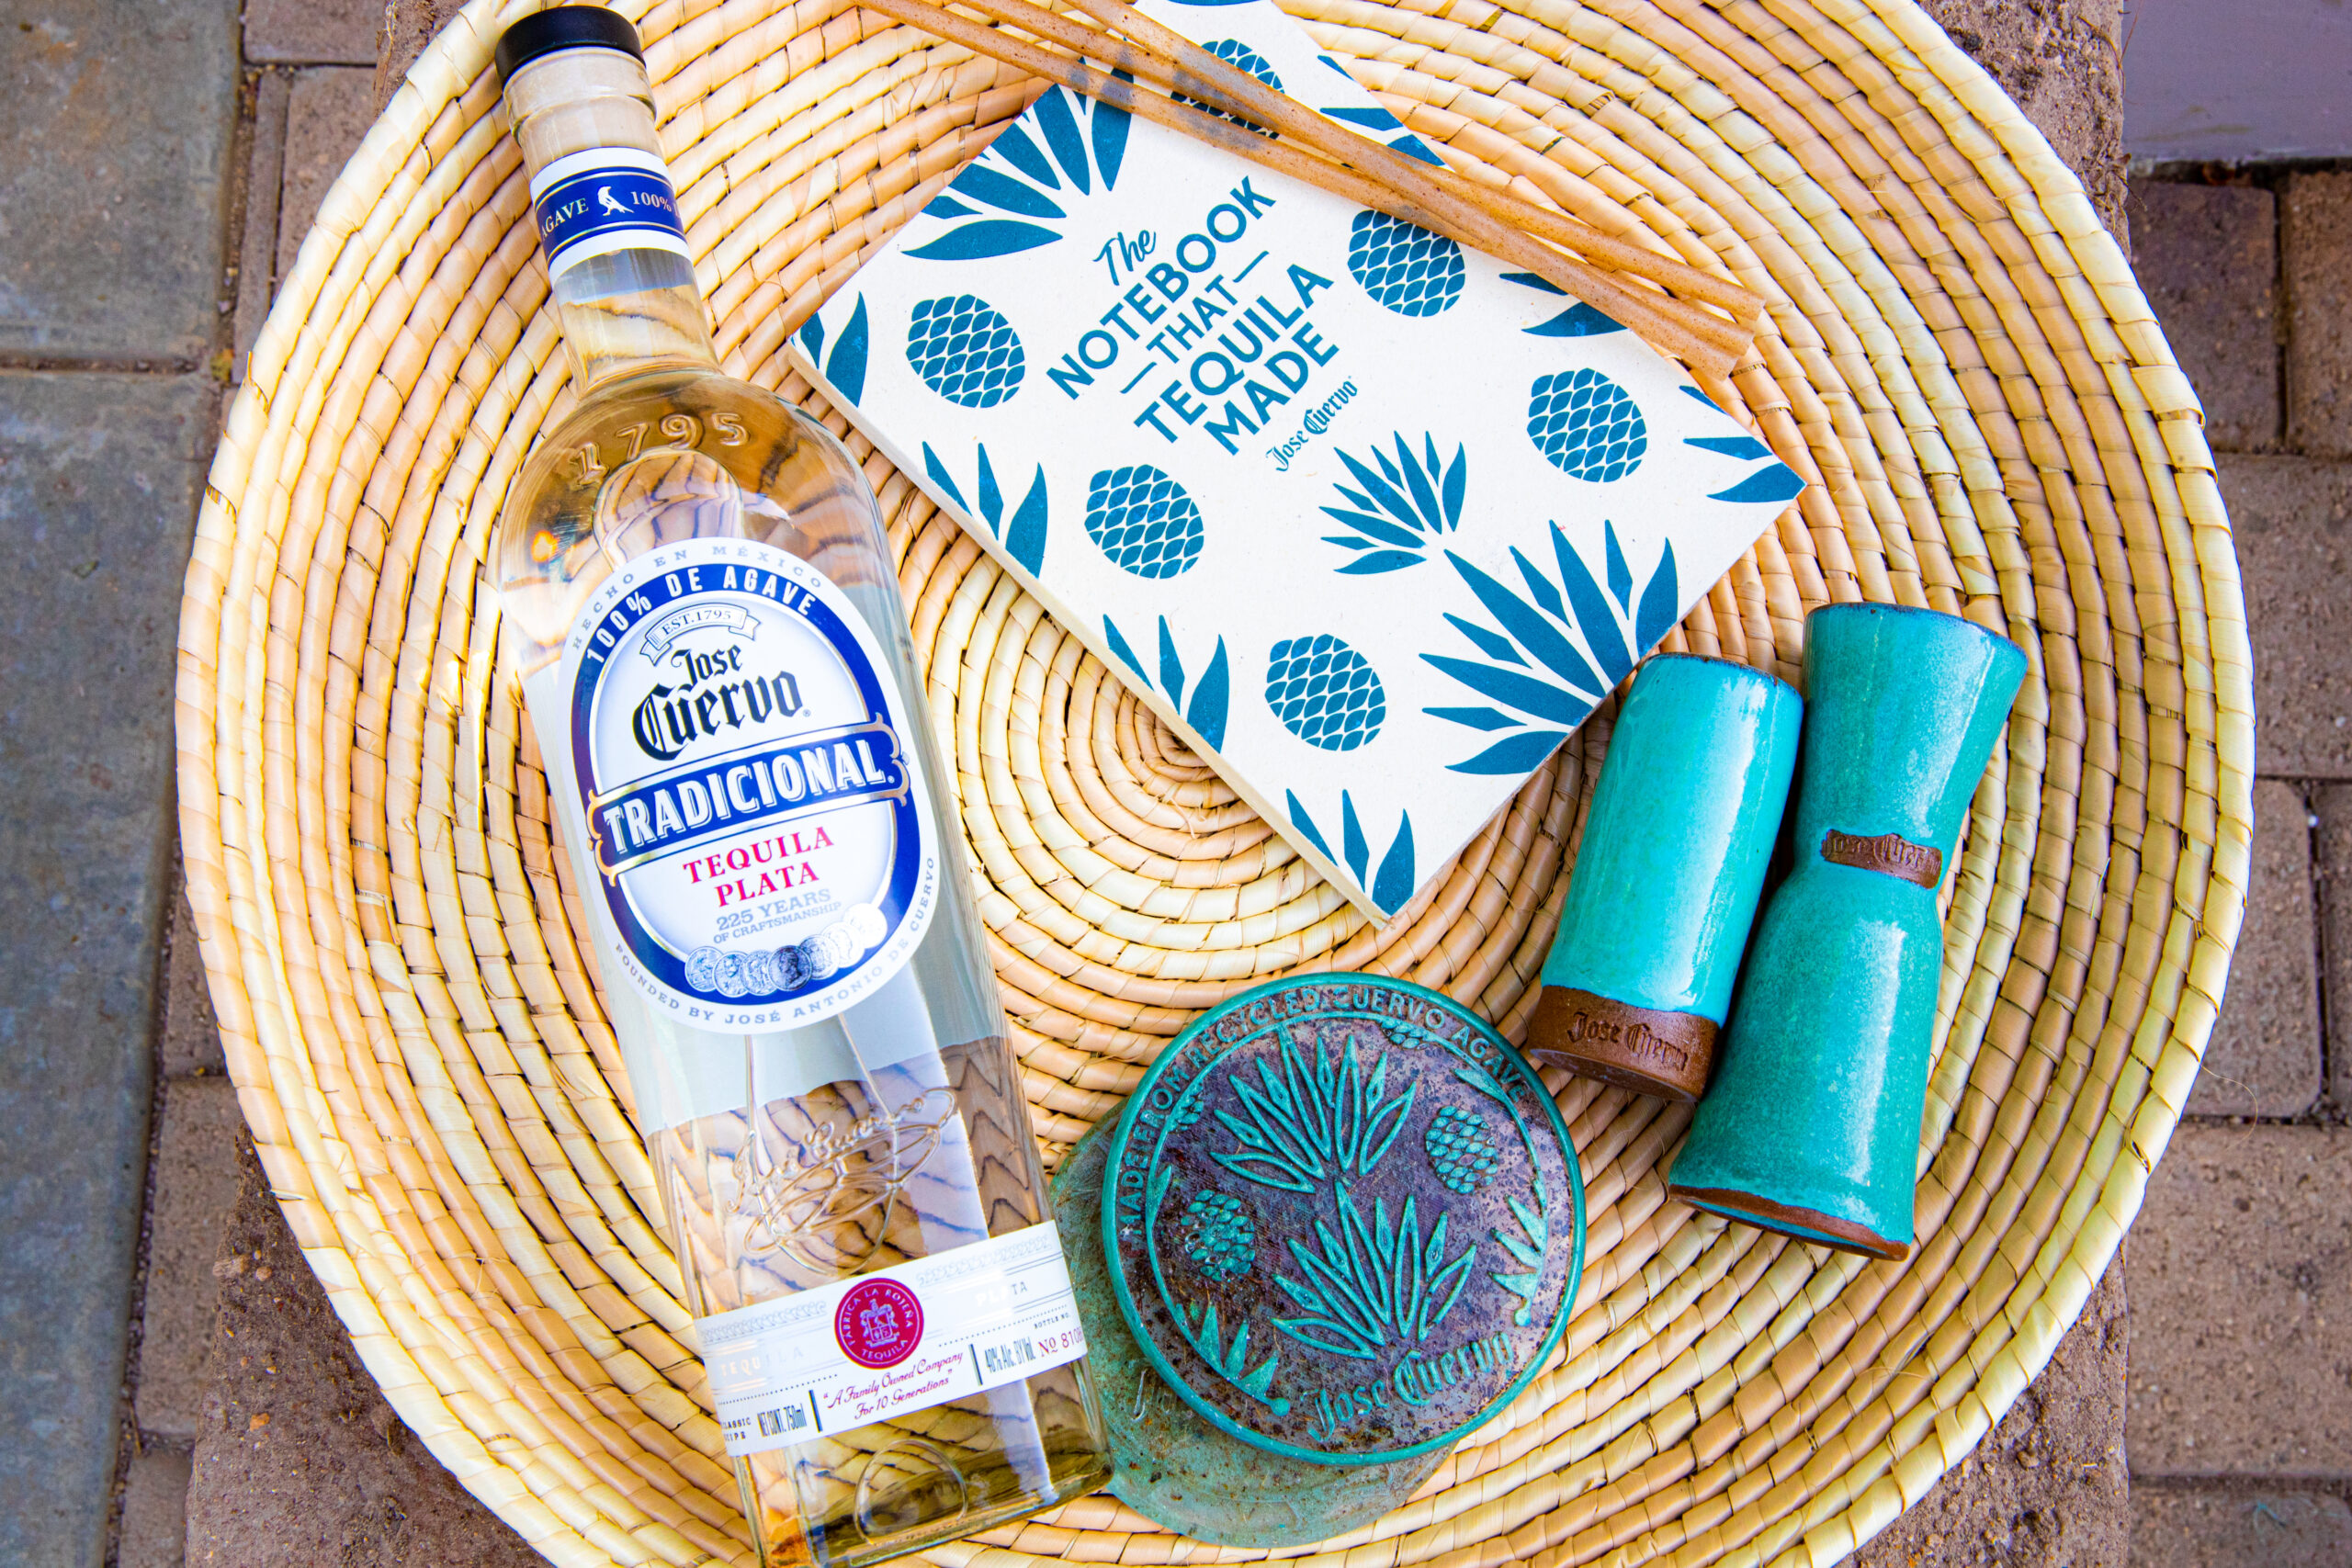 Drinking Jose Cuervo Can Help Fight Climate Change And Water Shortages